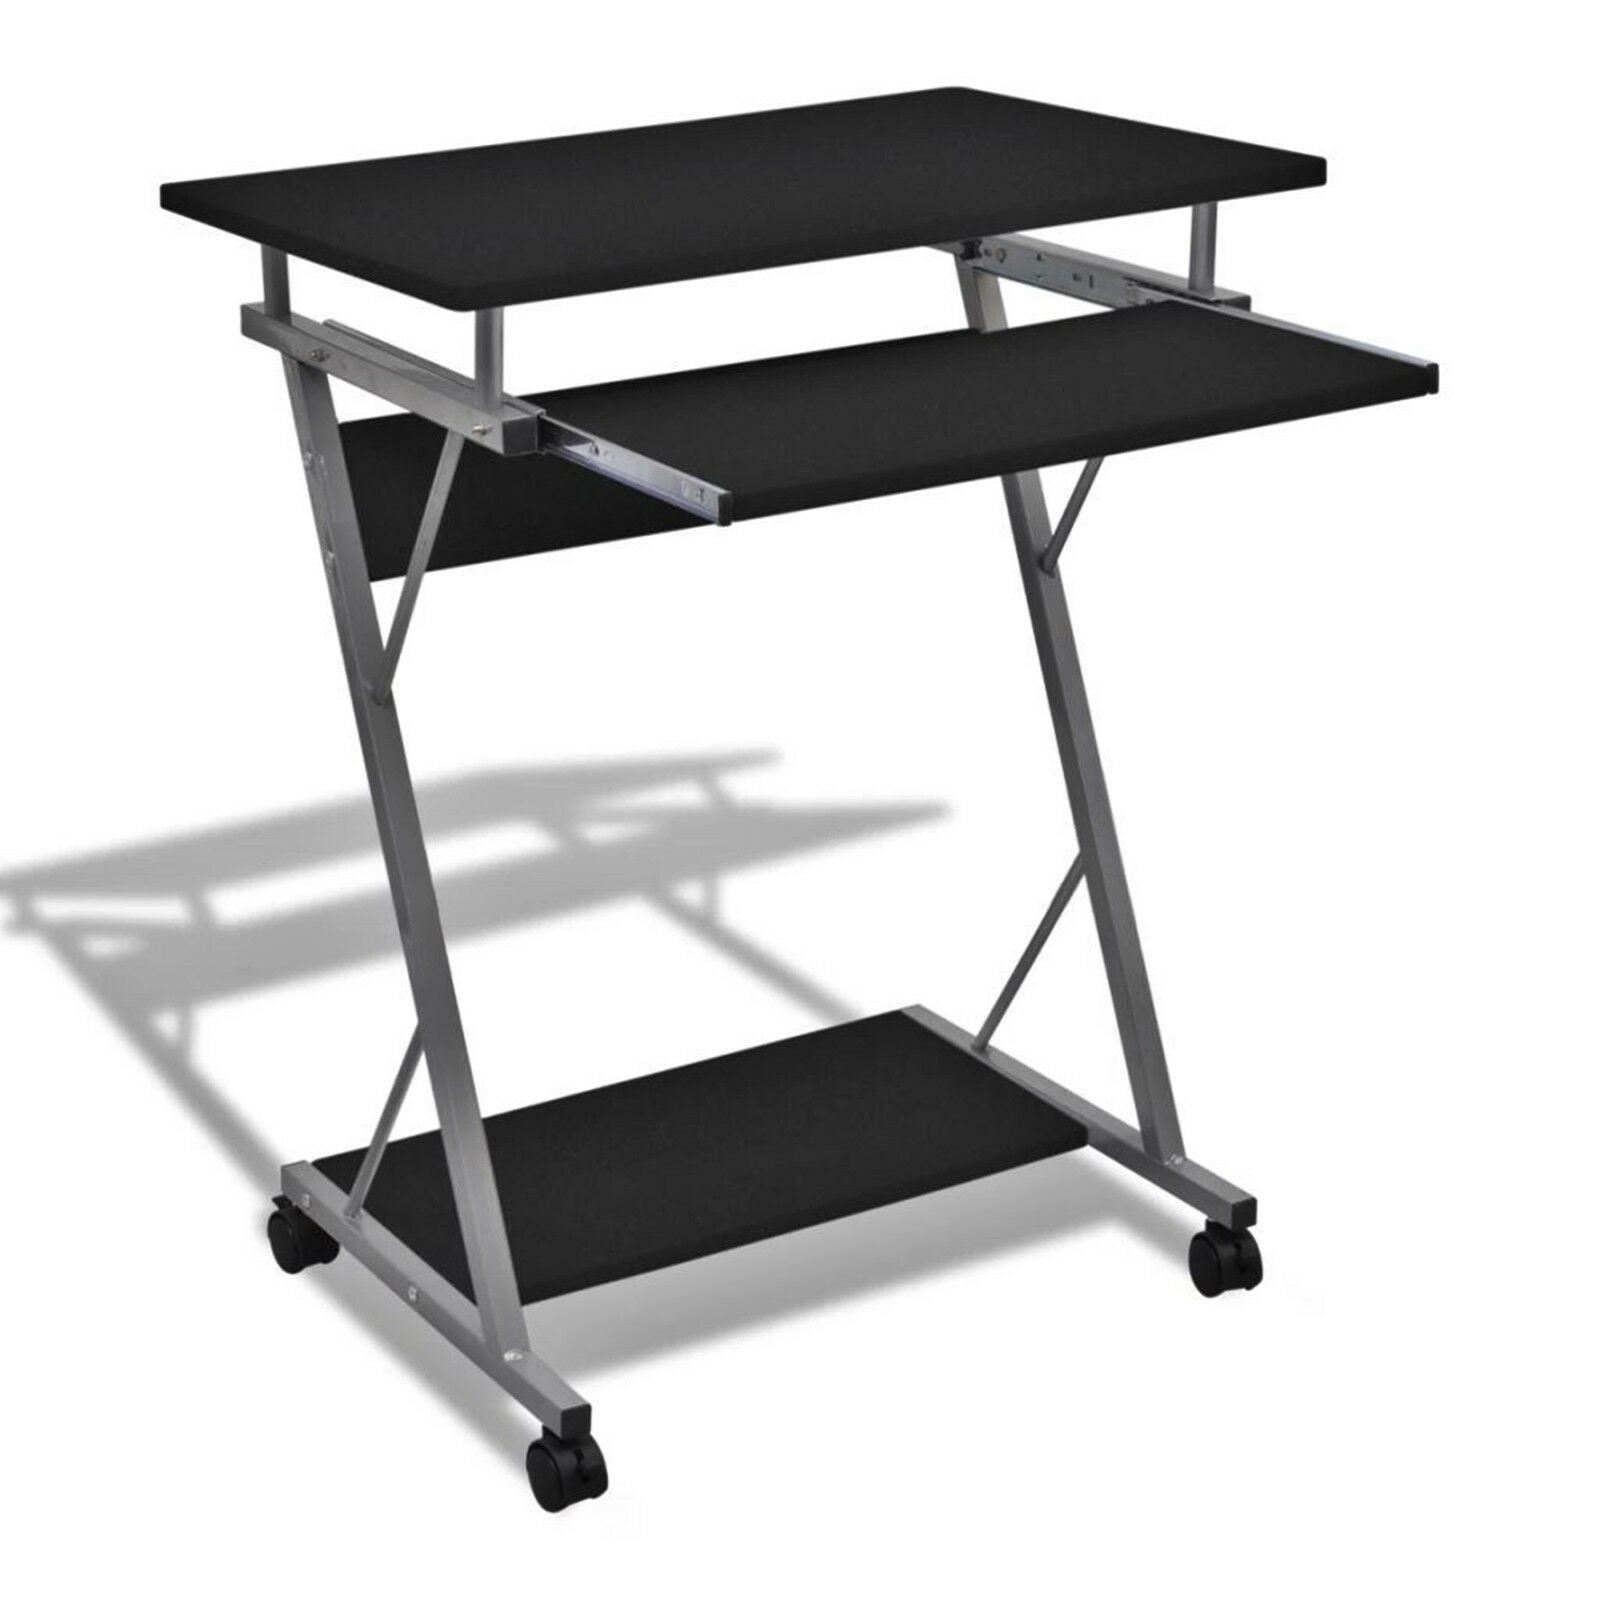 buy online dfe47 8cc10 Details about Portable Computer Desk Black Laptop Stand Small Workstation  PC Trolley Stand New